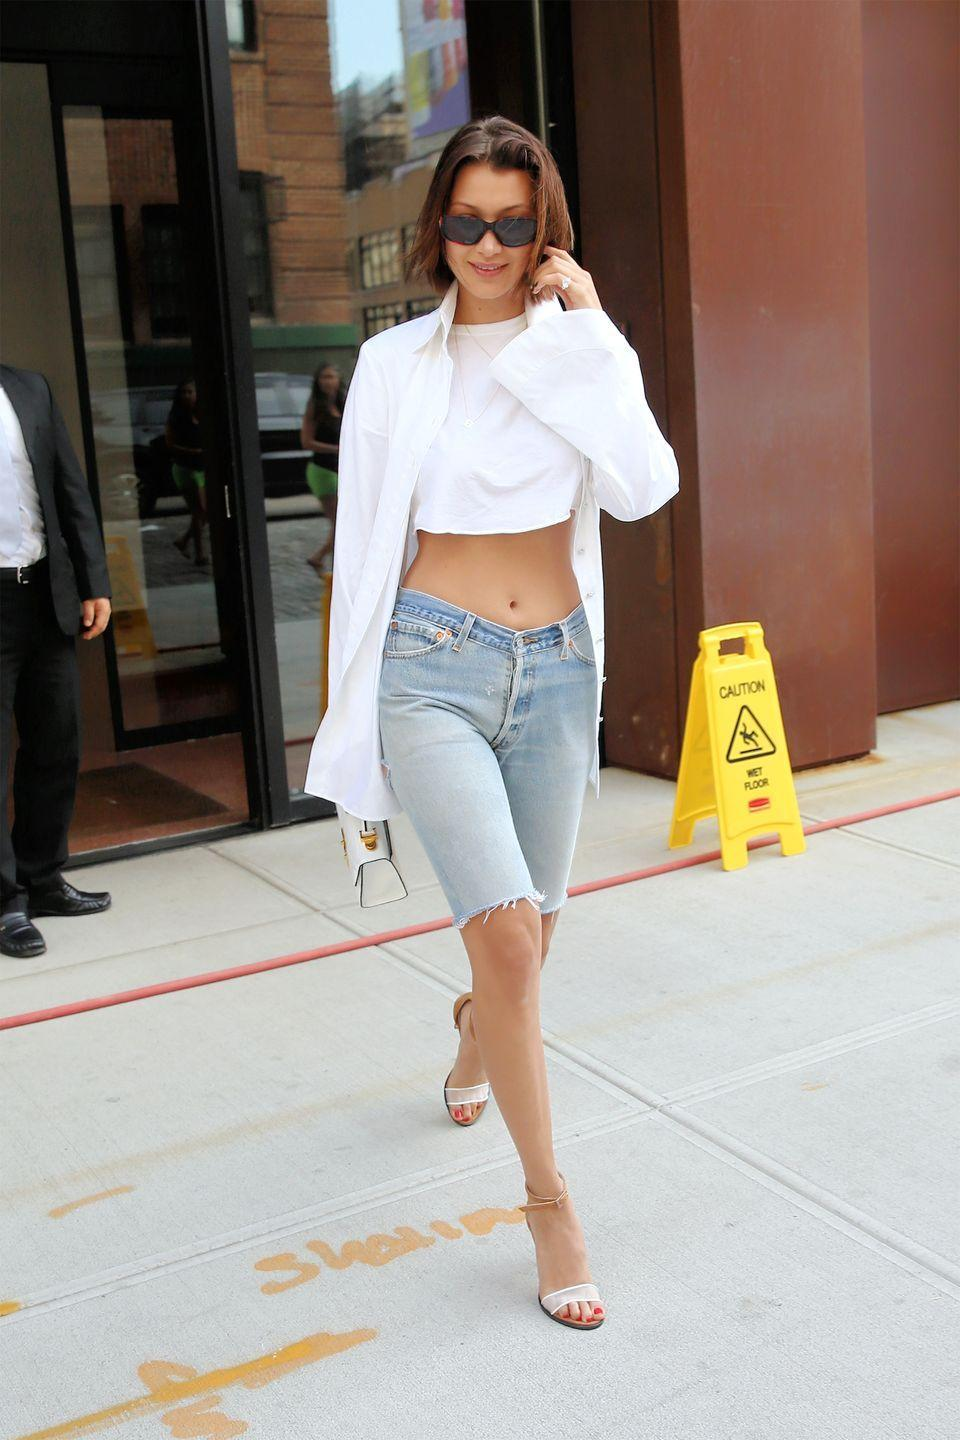 <p>In a Kreist white shirt as a jacket, crop top, Dear Frances sandals and jorts leaving Gigi's apartment in NYC.</p>